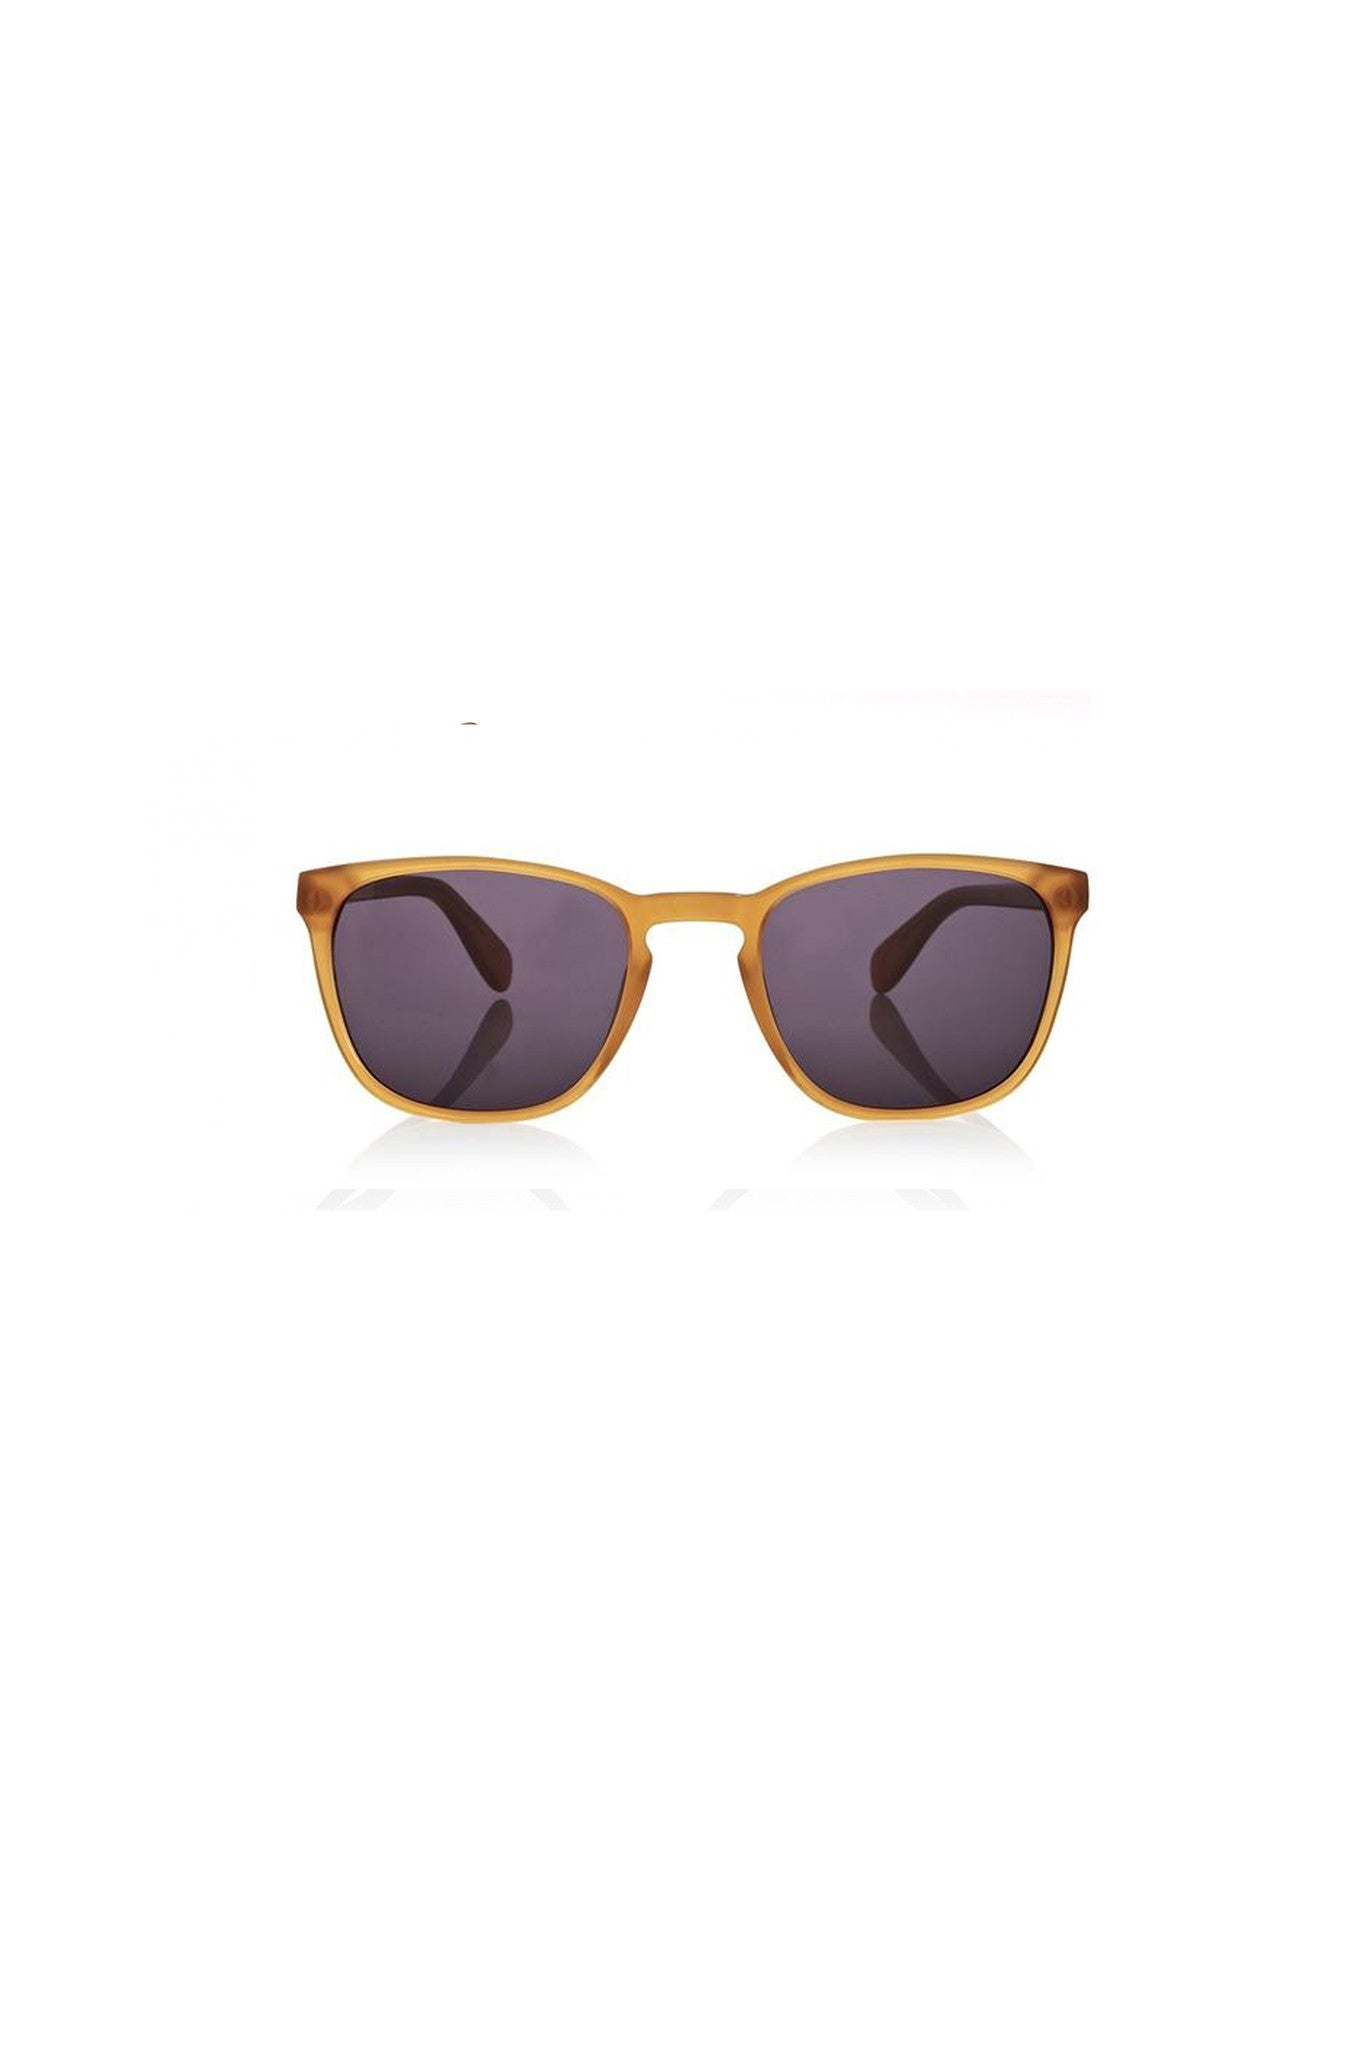 Finlay & Co Percy Cetate Sunglasses